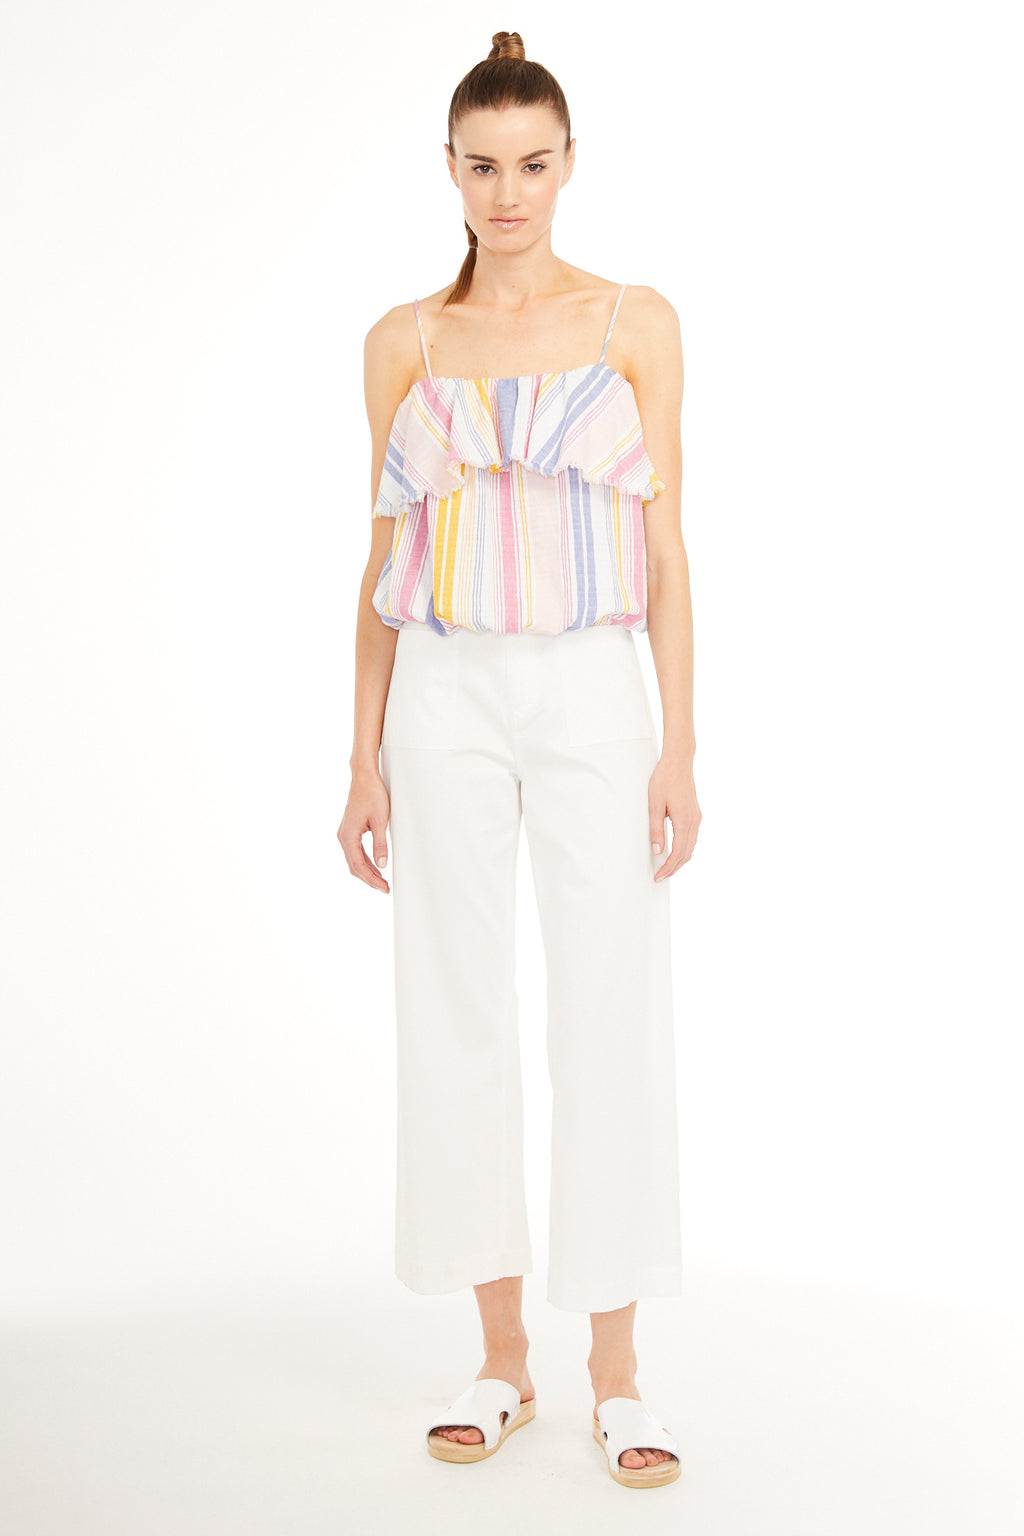 SUNDAYS NYC, TOP, SUNDAYS NYC| Peony Ruffle Tank Top with Elastic Hem - Edgar Martha's Vineyard